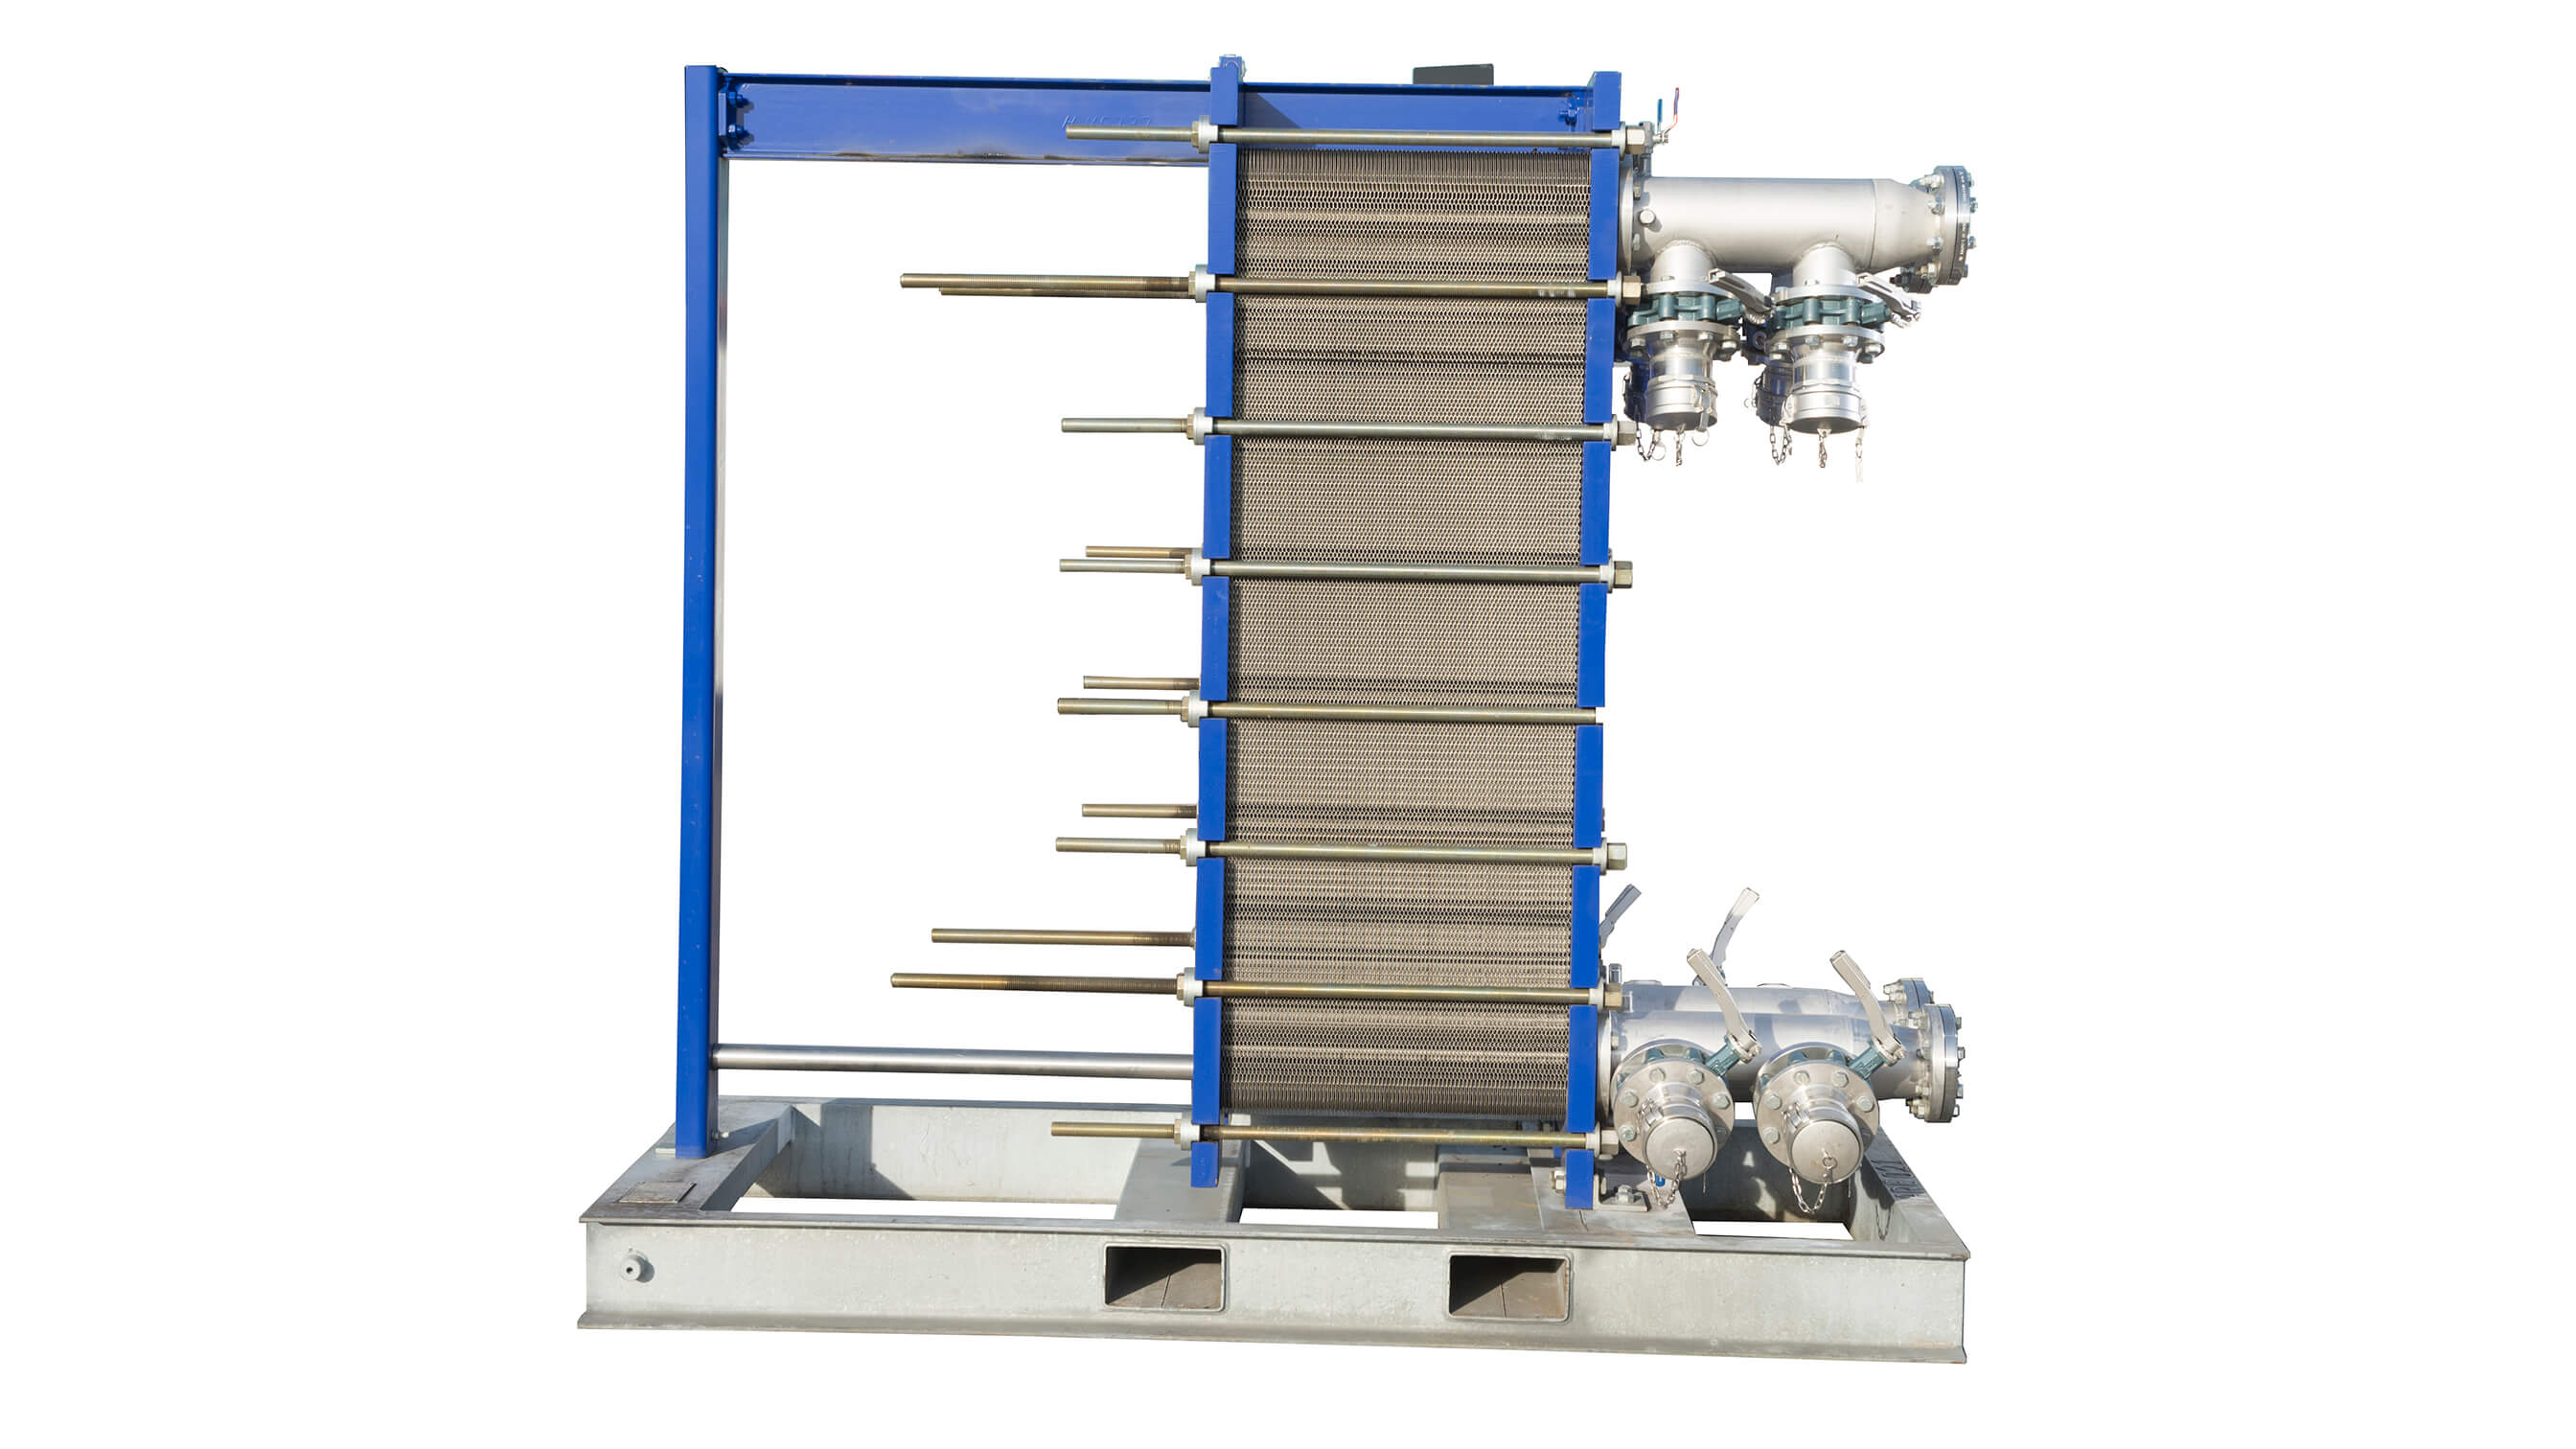 HX1000 Heat Exchanger